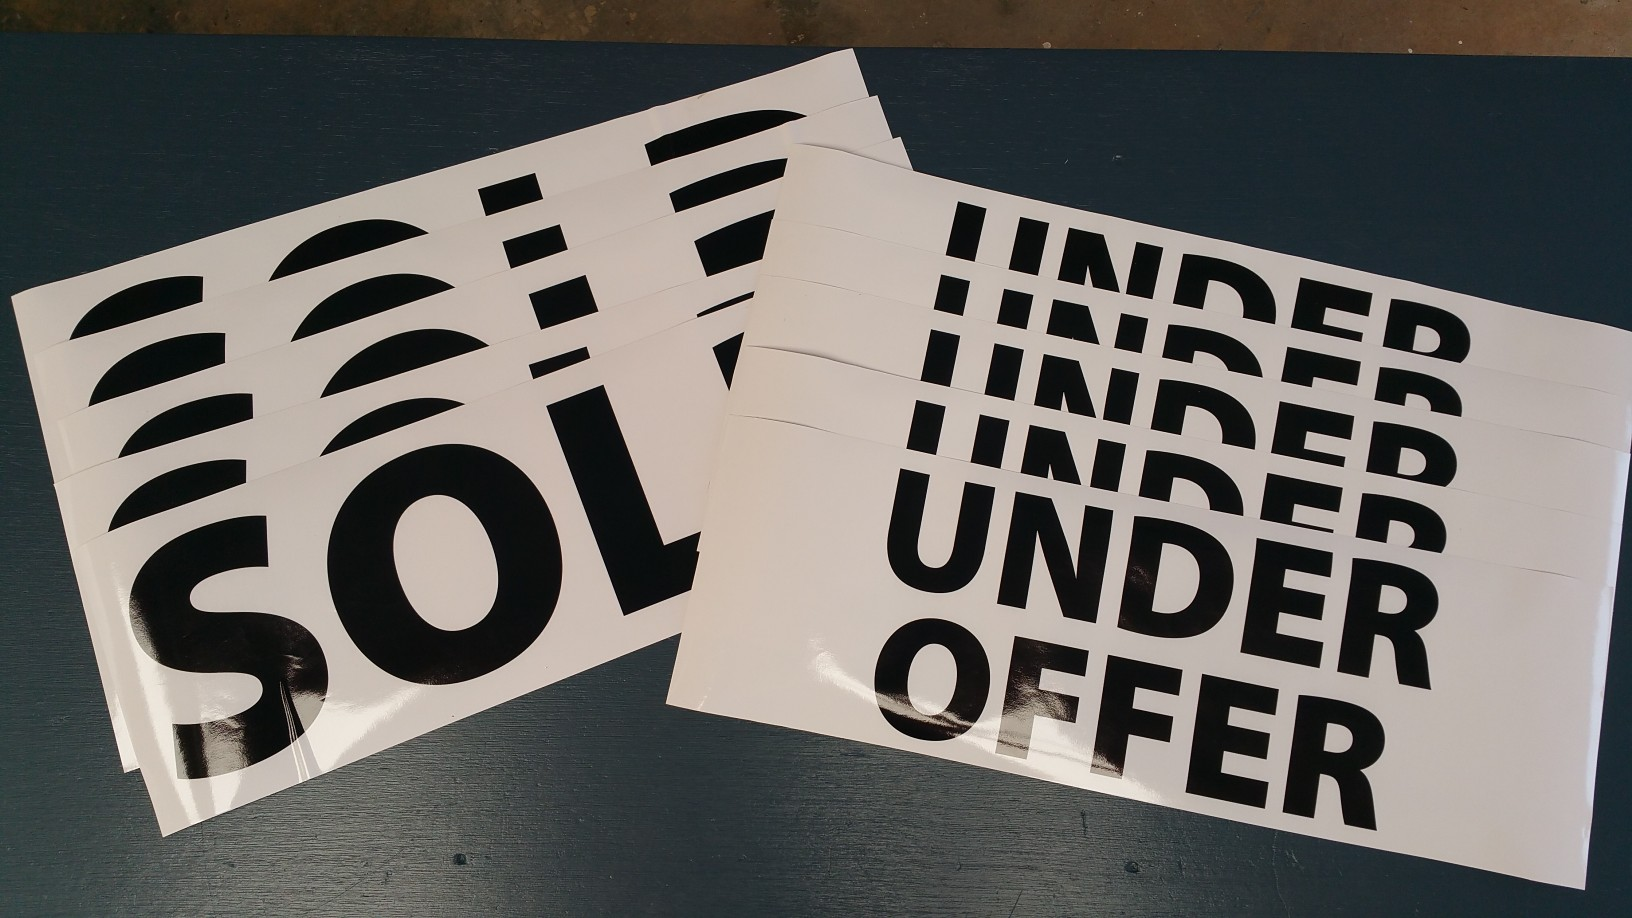 sold-and-under-offer-sticker-b-w.jpg